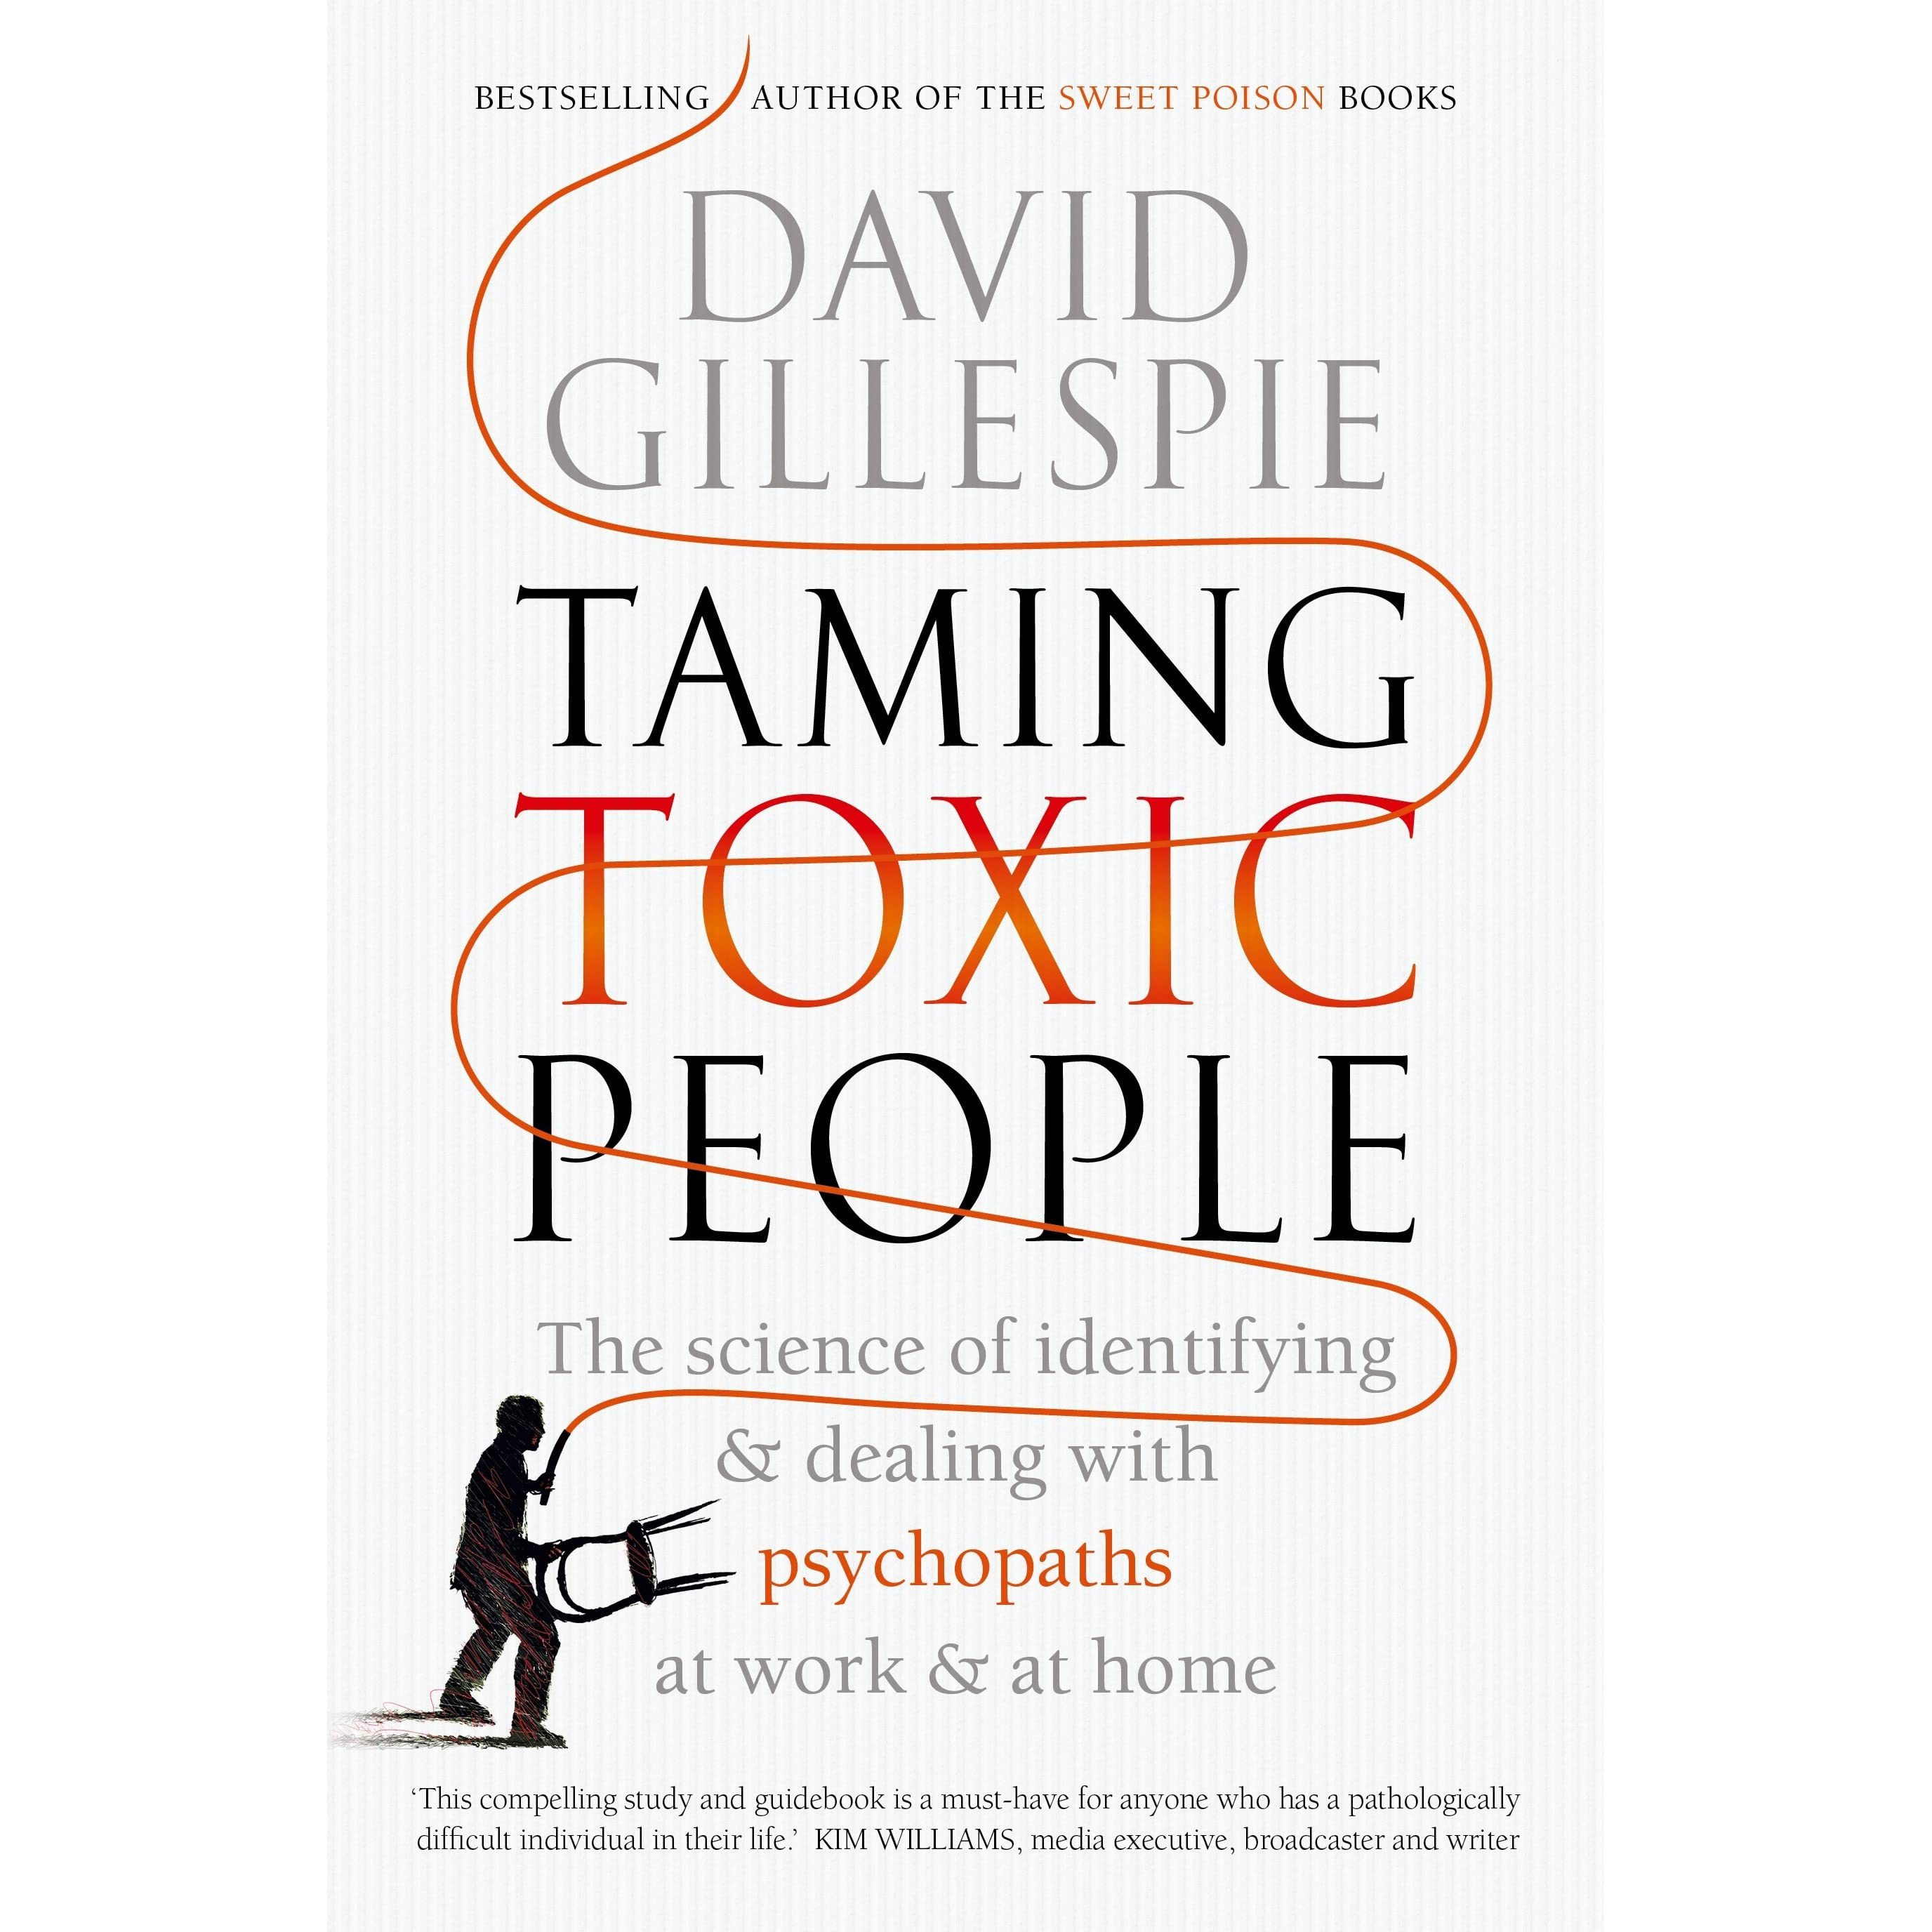 Taming Toxic People: The Science of Identifying and Dealing